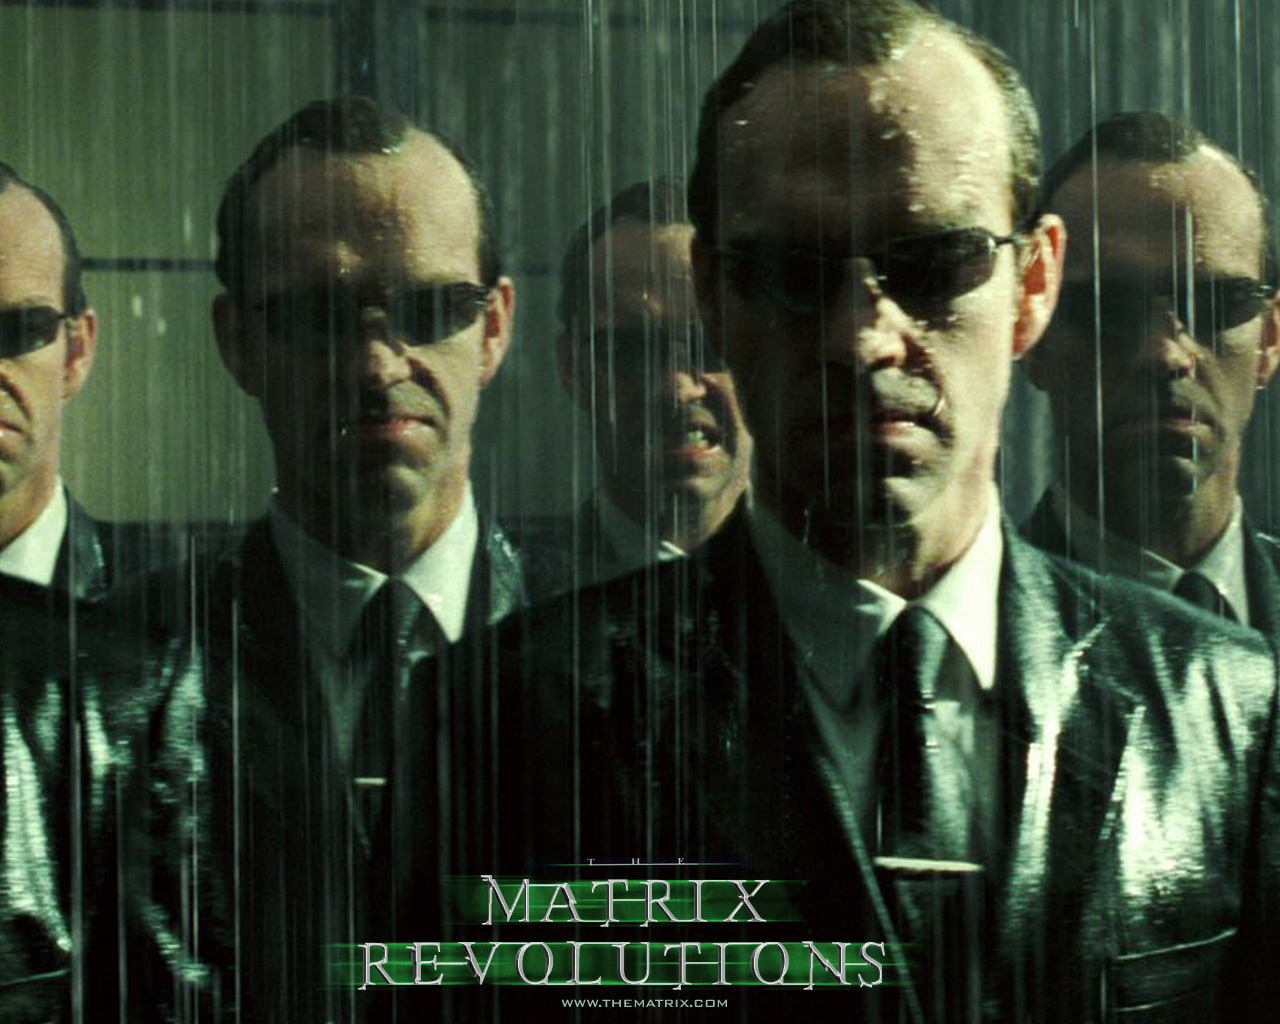 Agent-Smith-the-matrix-1954803-1280-1024.jpg